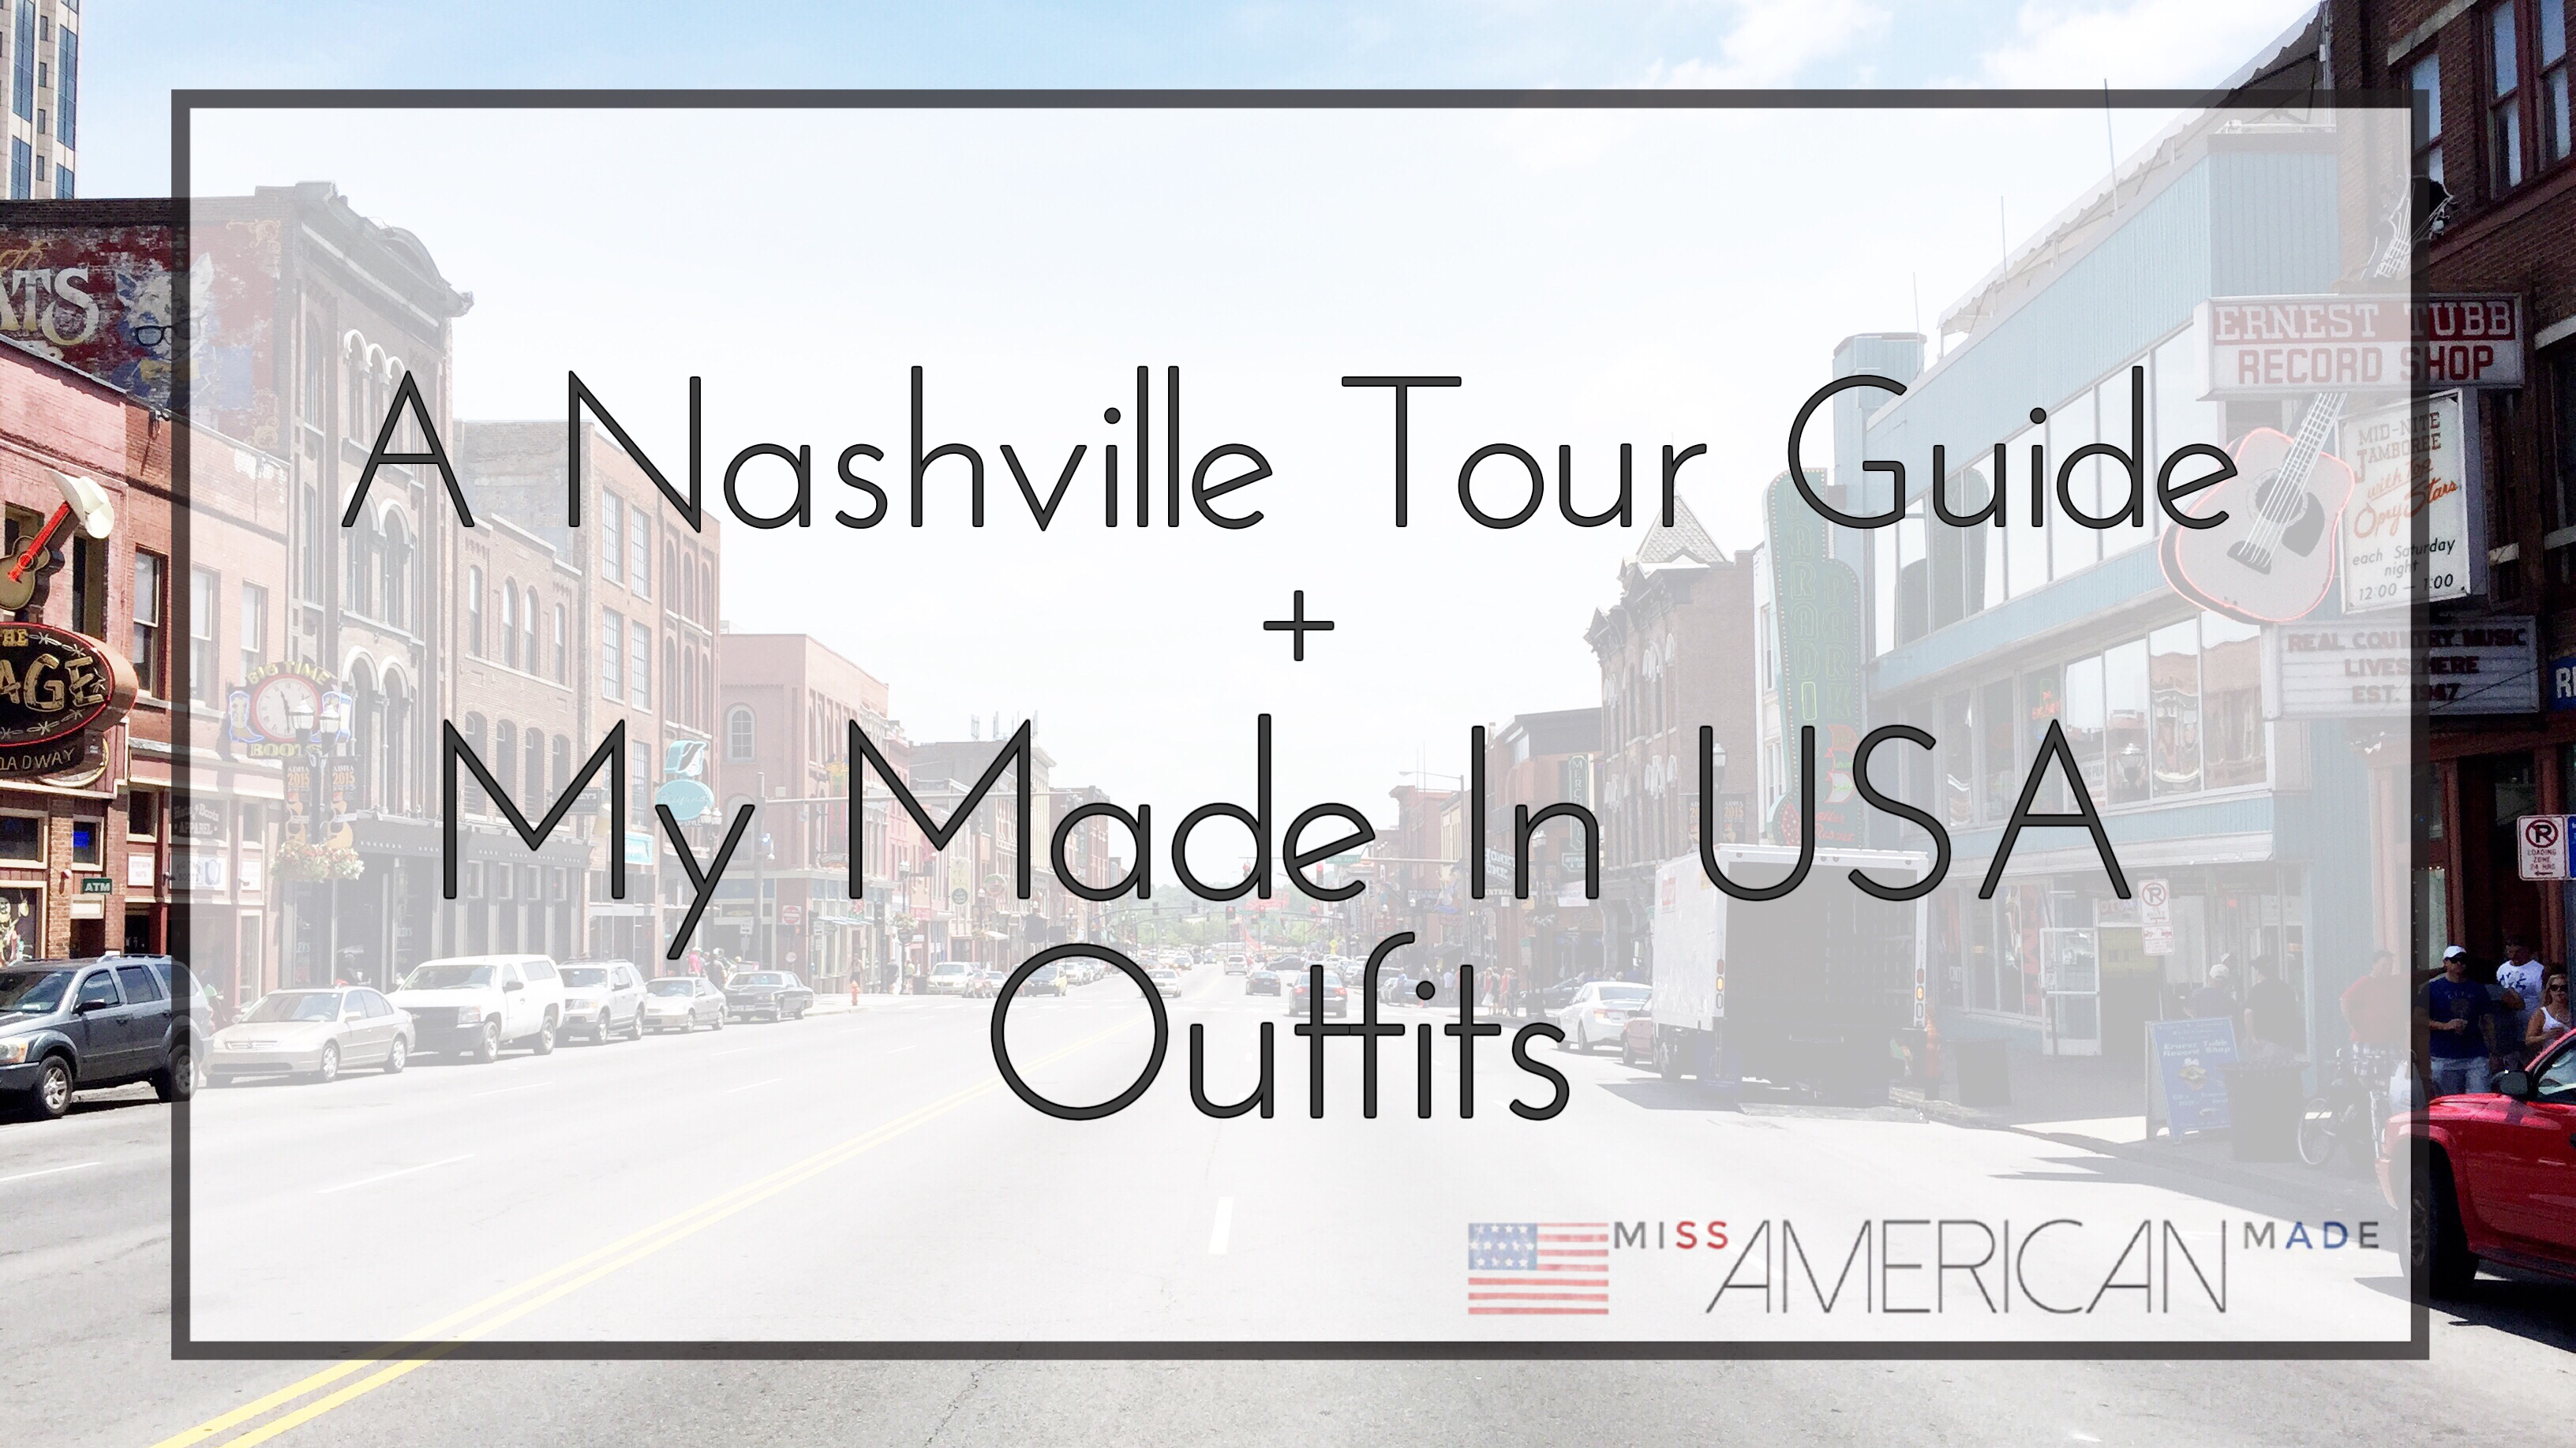 Nashville Tour Guide + Miss American Made's Made in USA Outfits